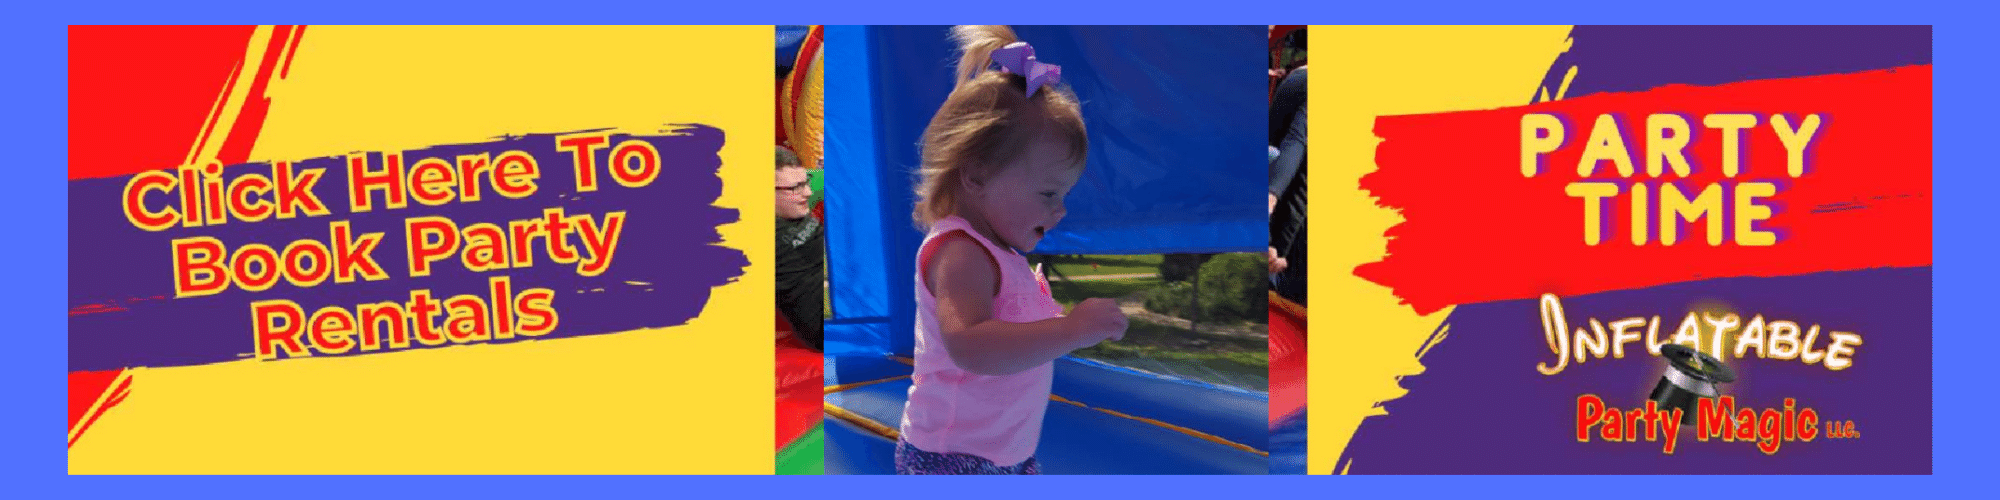 Rendon TX Bounce House Rentals, Water Slide Rentals, and Party Rentals Book Now